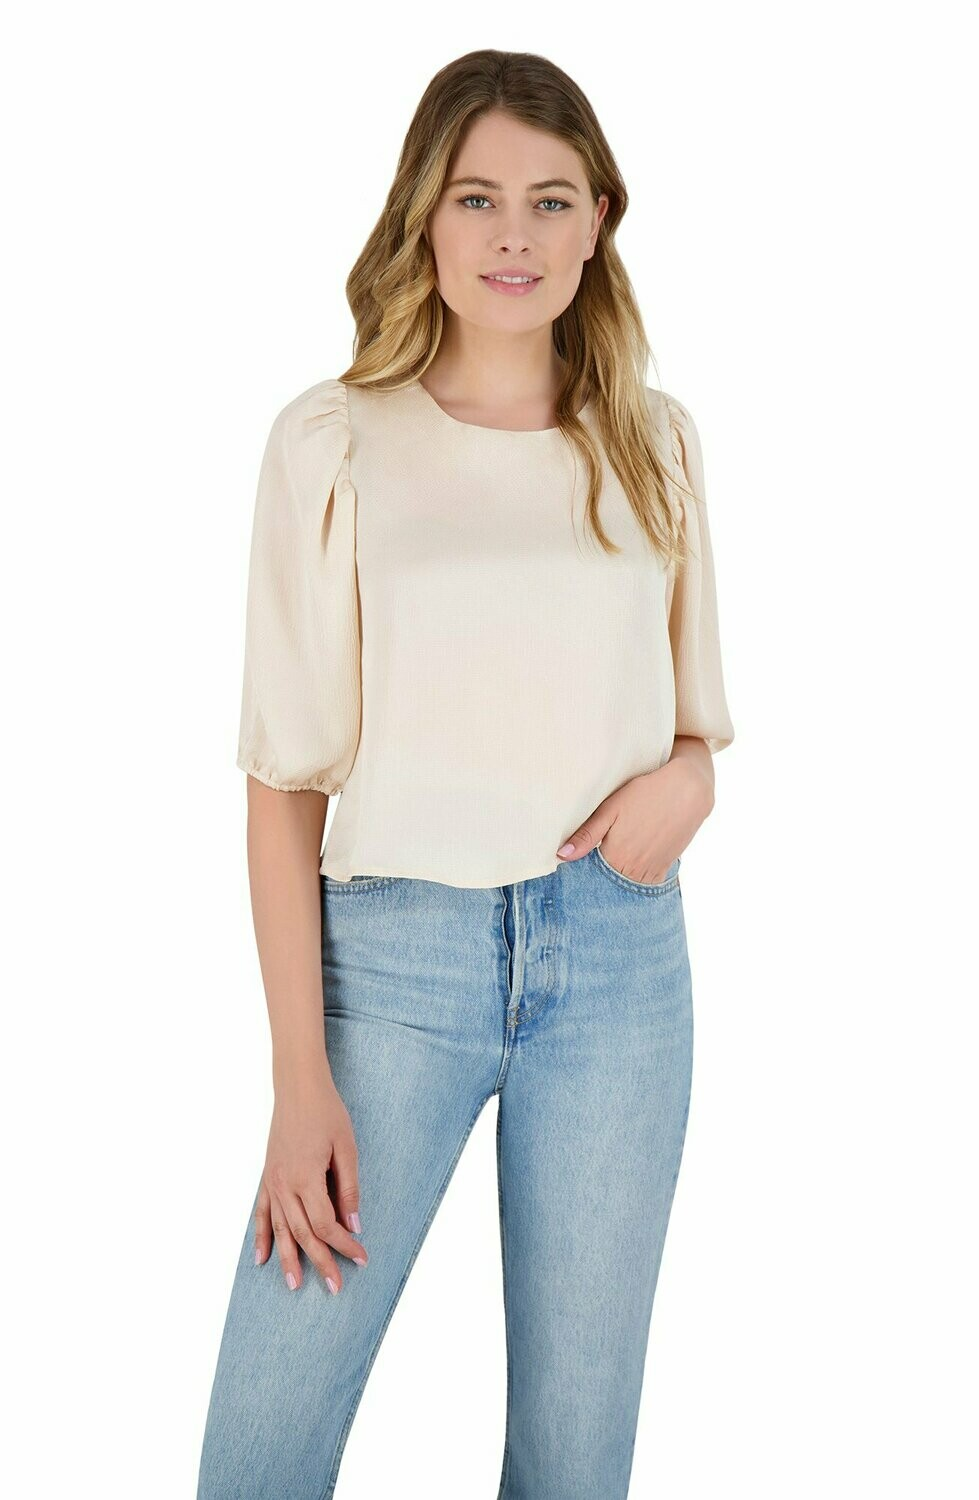 Alabaster Satin Balloon Sleeve Crop Top